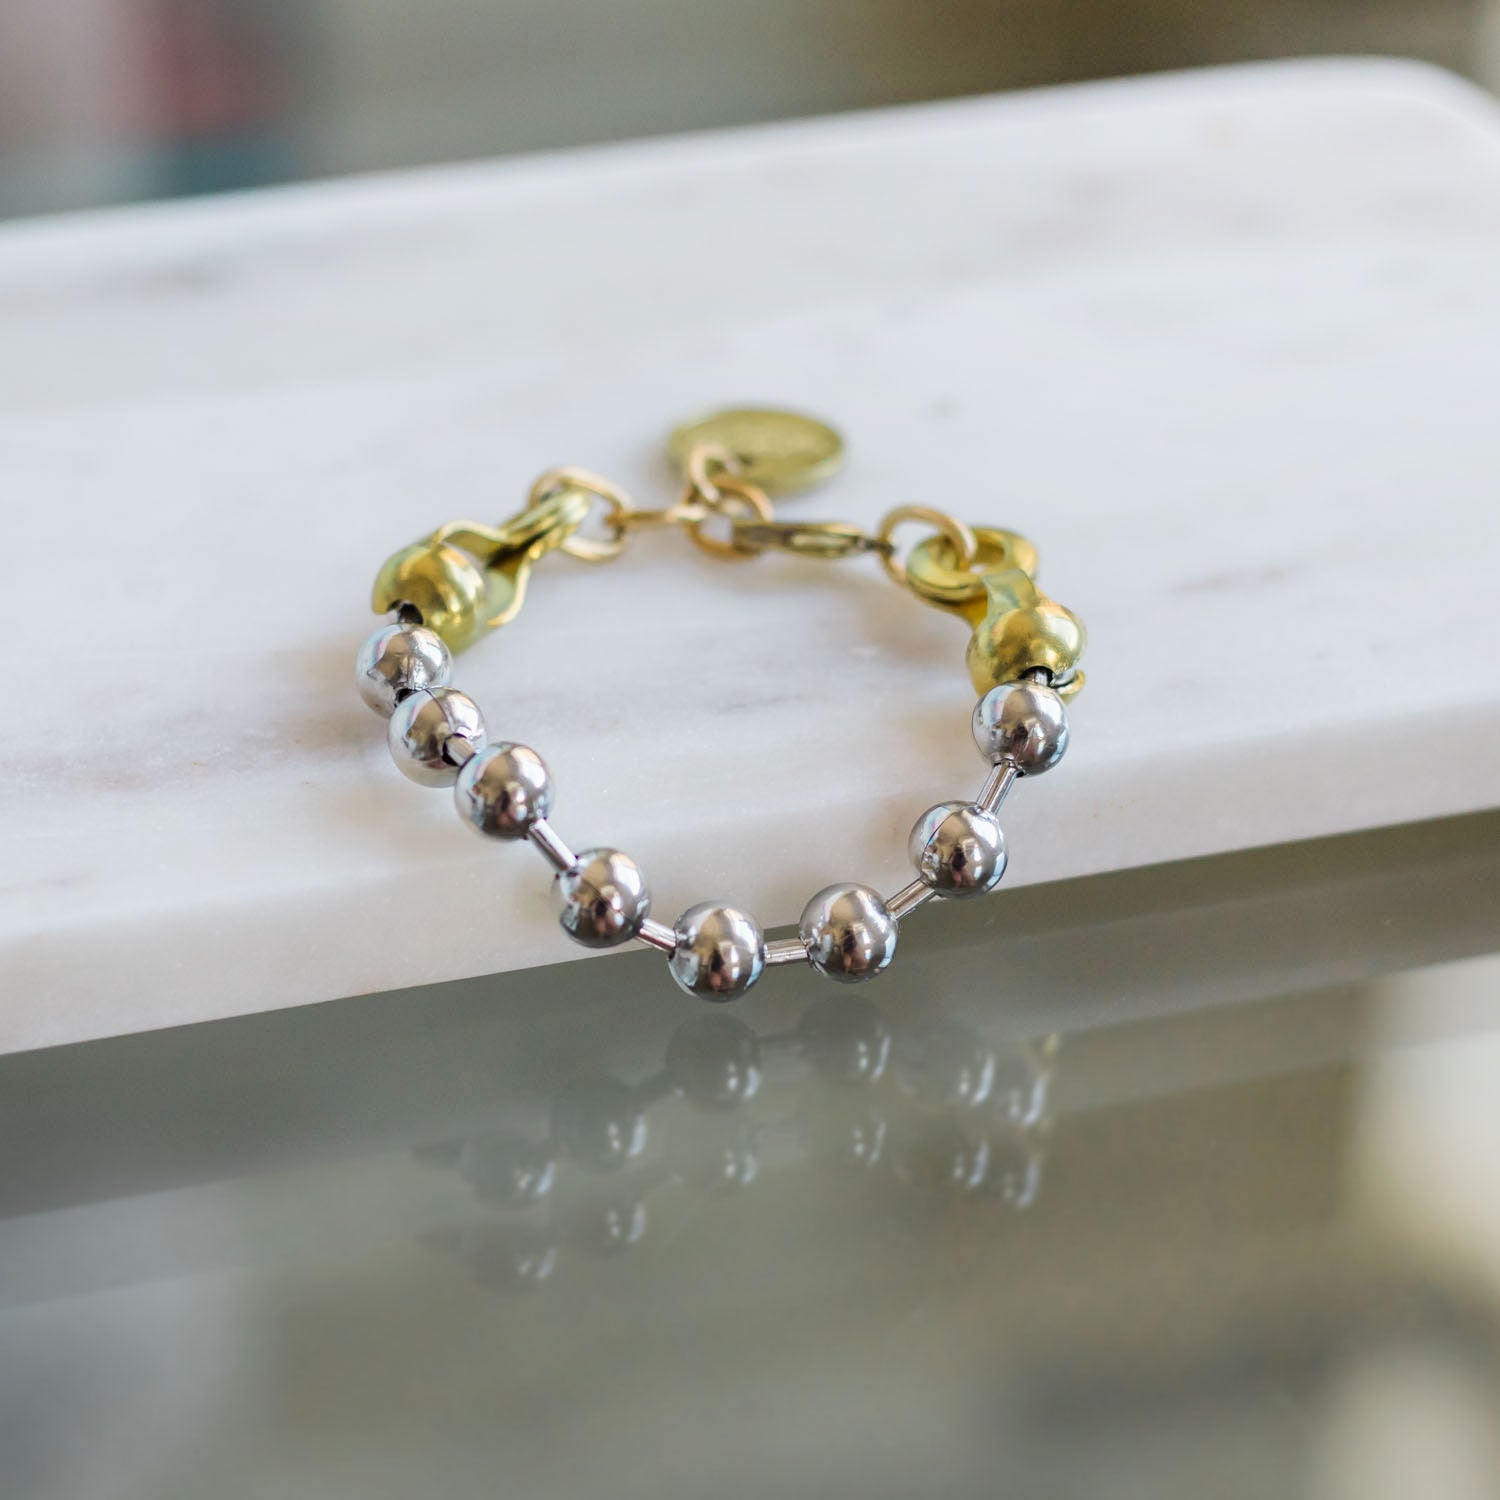 BALL & CHAIN Bracelet - Twisted Silver Jewelry